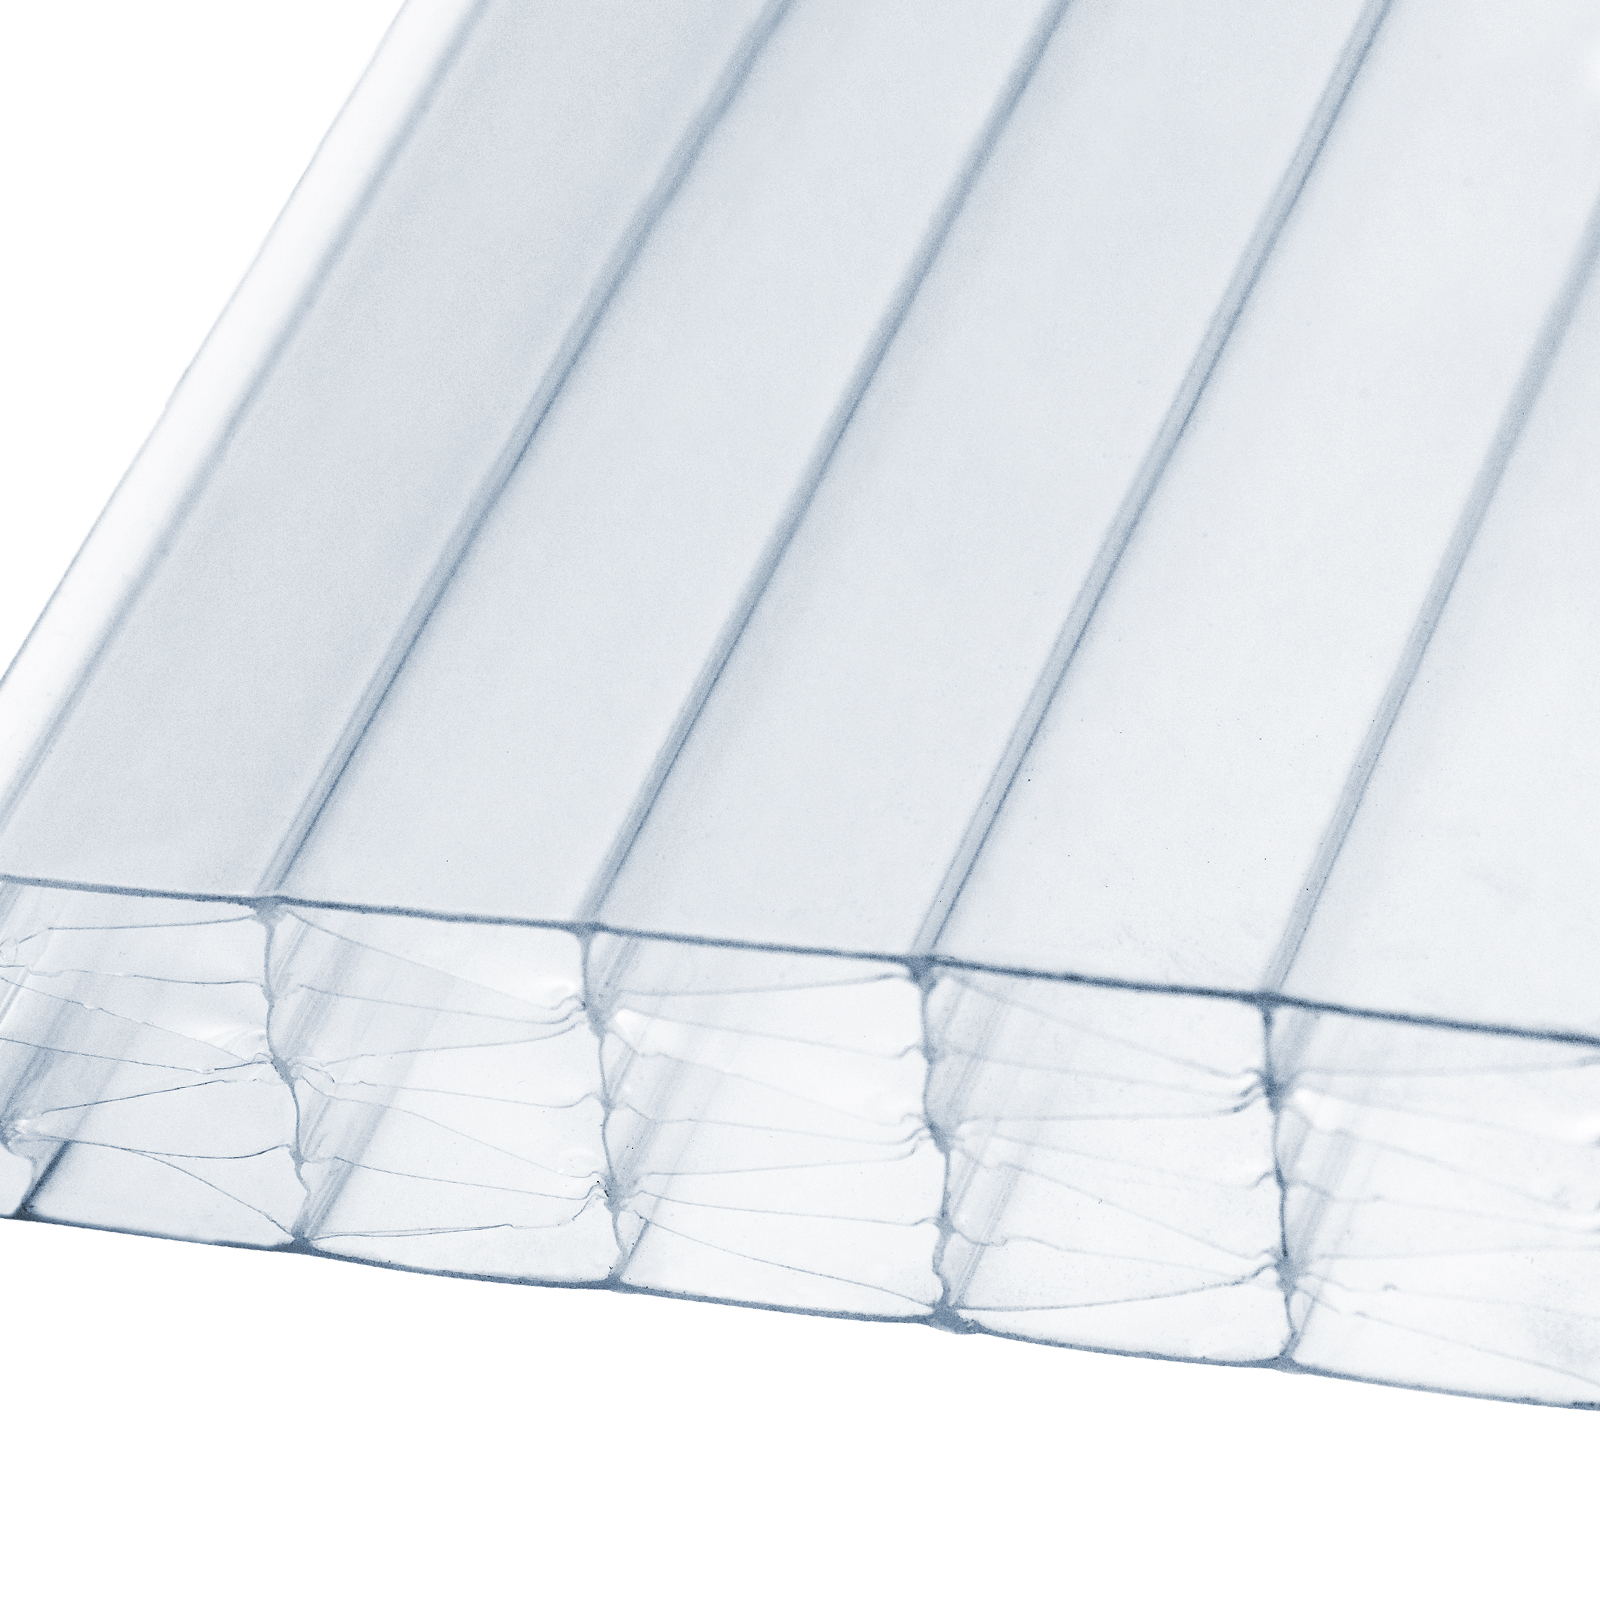 25mm Clear Polycarbonate Multiwall Sheets Truly Pvc